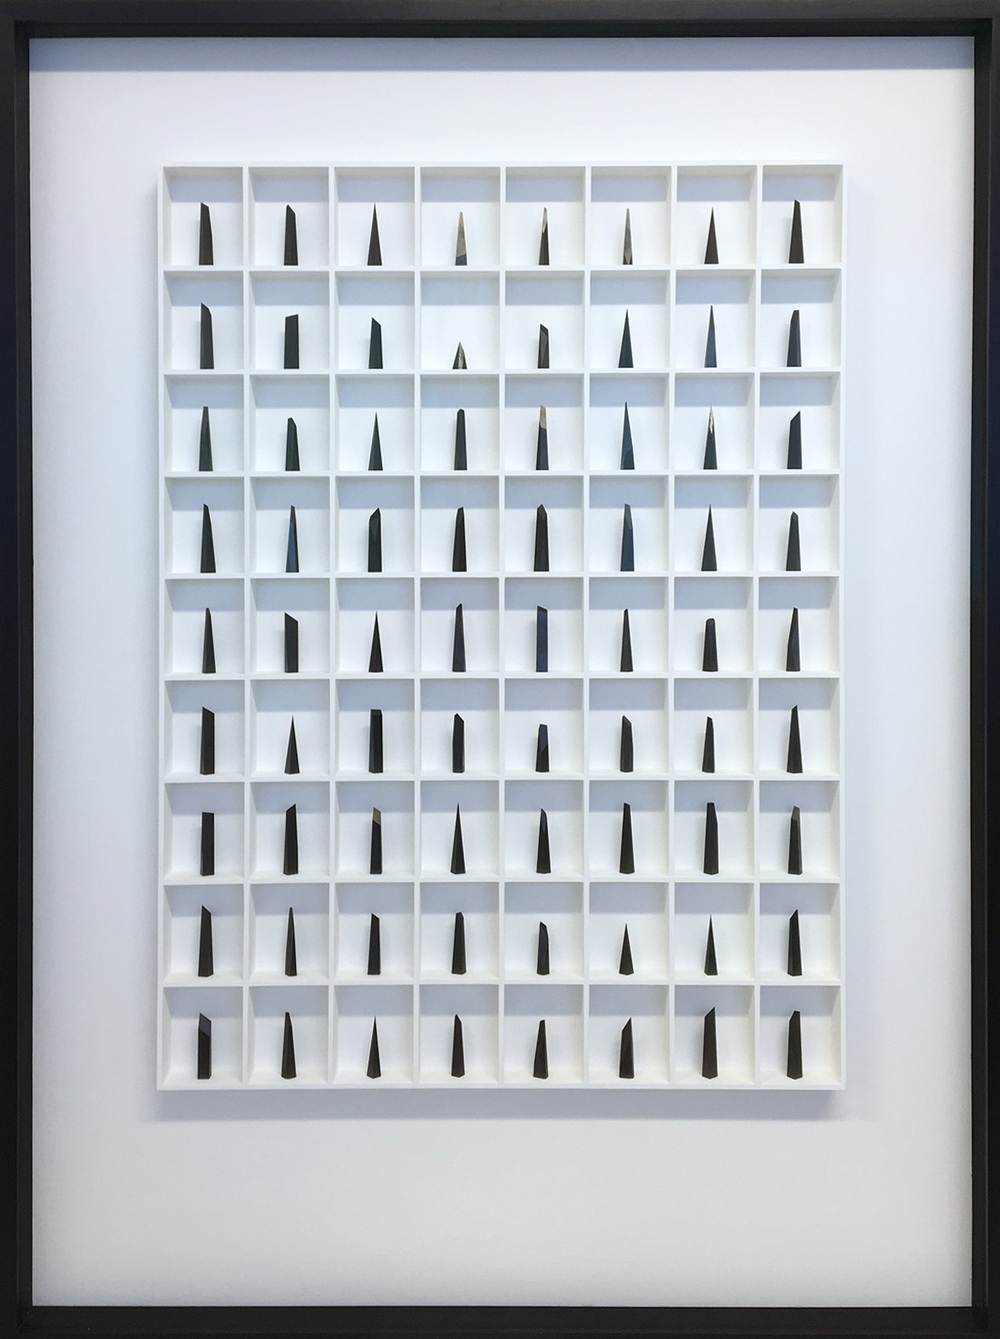 Paul Fry Hope - 72 pieces of graphite 107 x 7 x 144 cm graphite in wood construction £ 6000